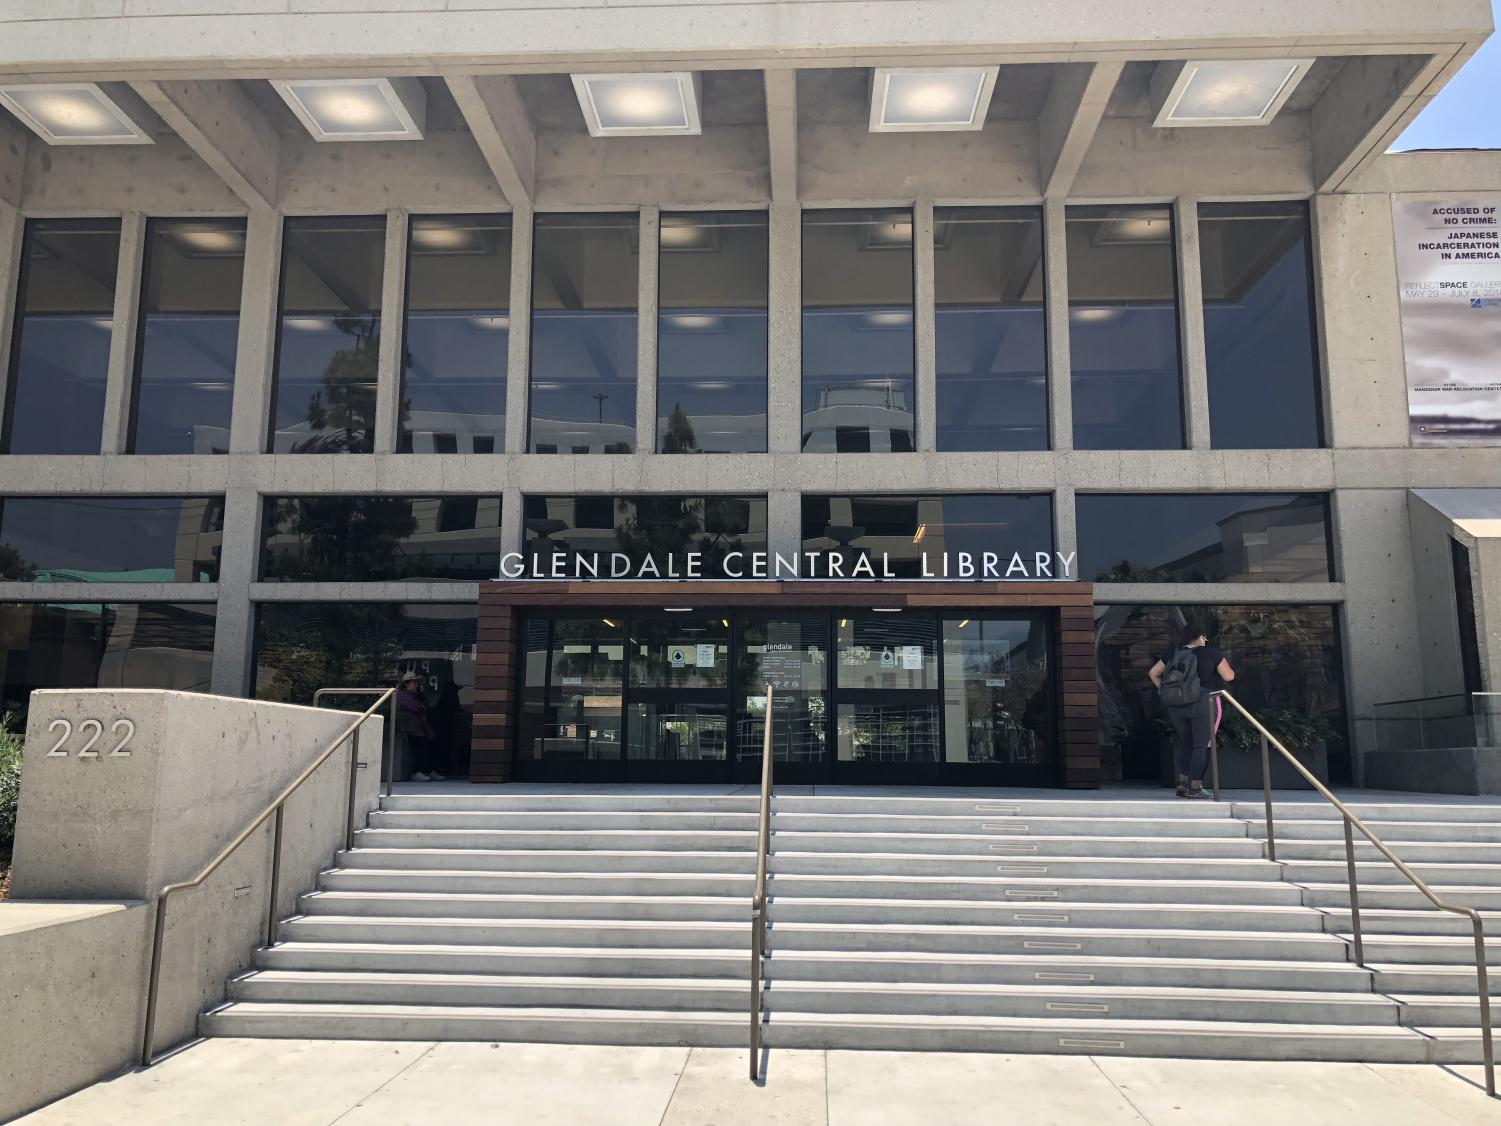 The second annual MakerFest was held at Glendale Central Library on Sept 21.